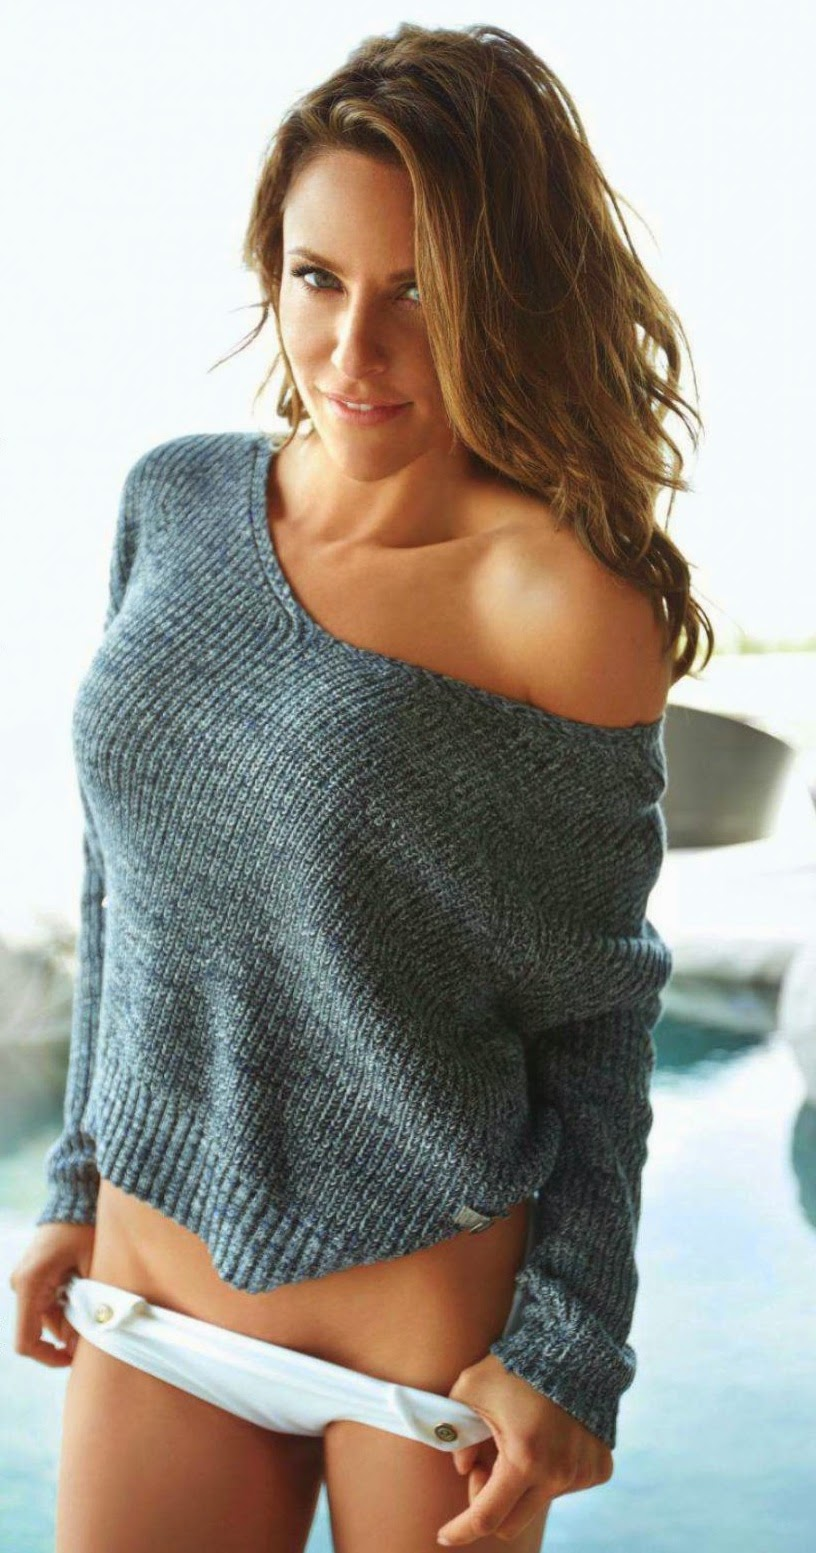 nude photos of jill wagner